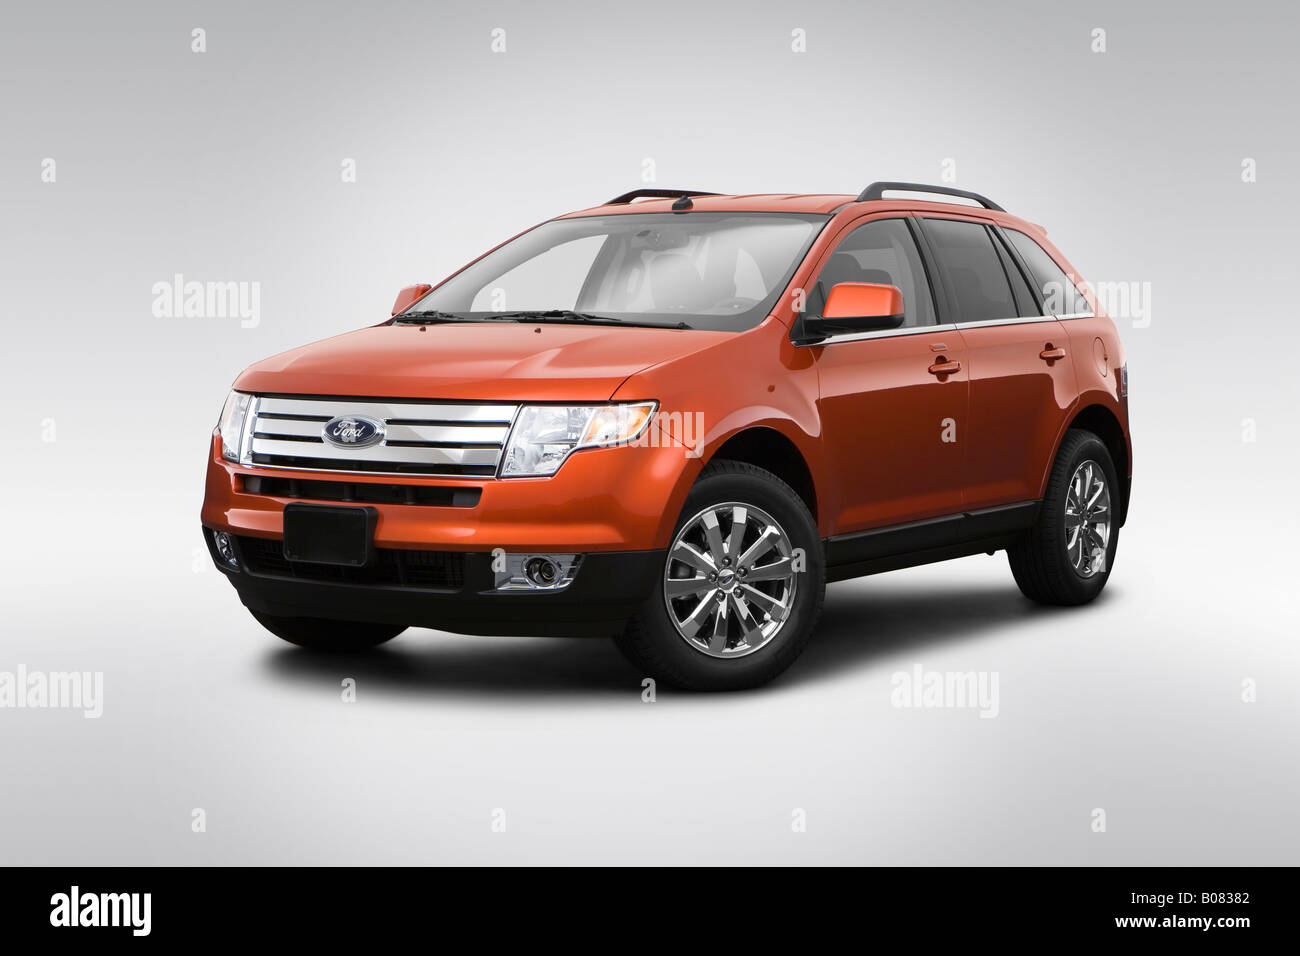 2008 ford edge limited in orange front angle view